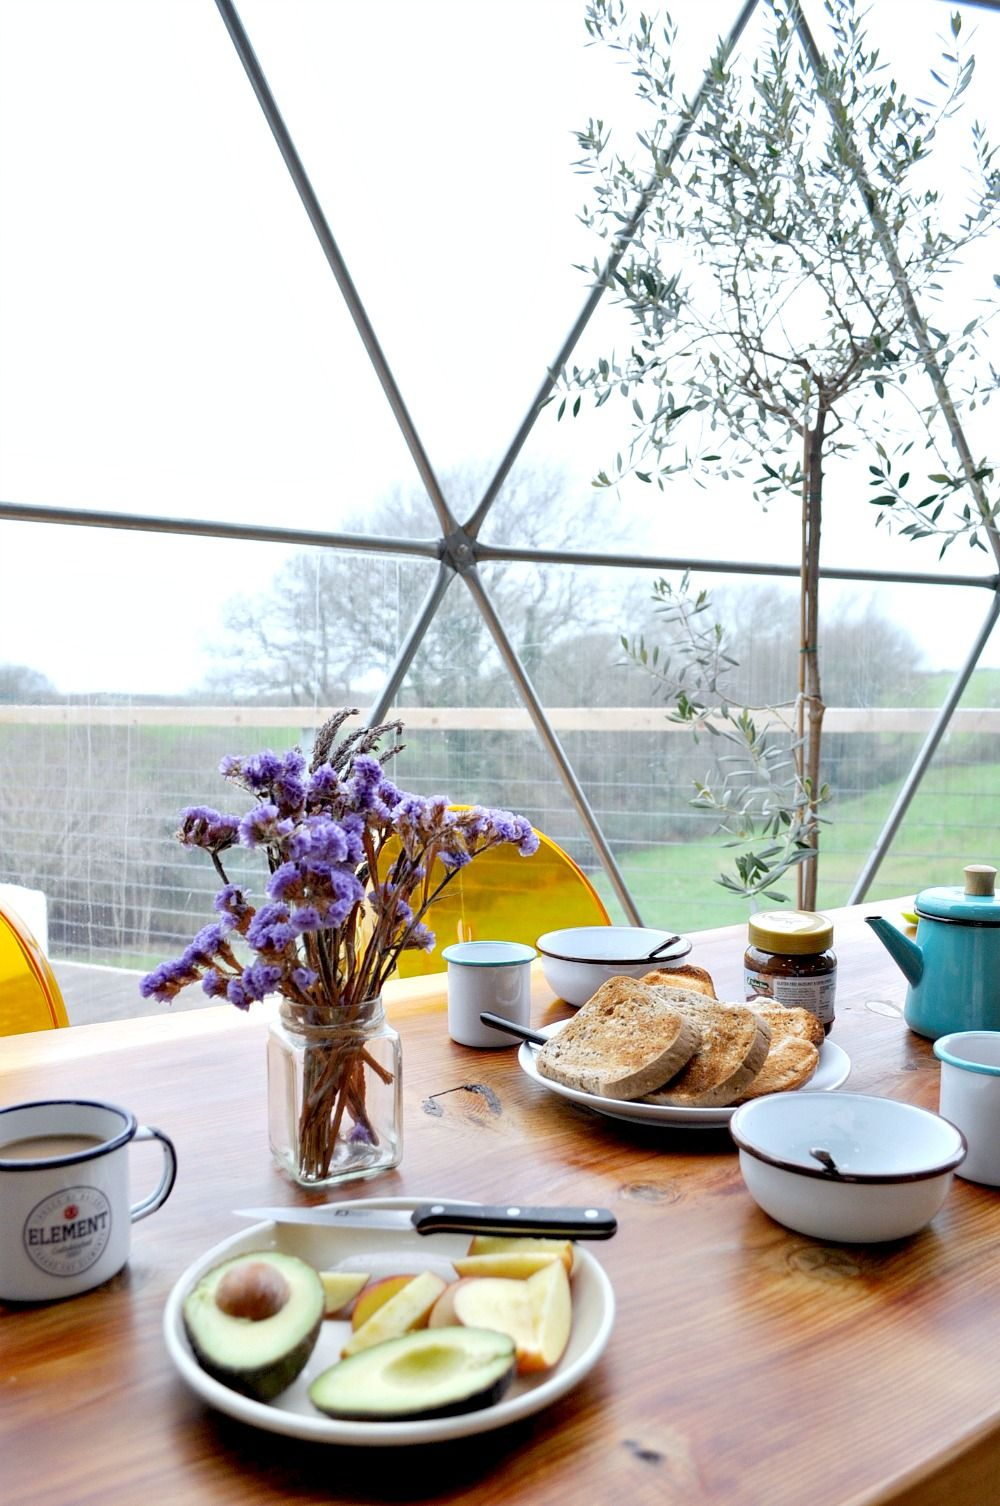 WINTER GLAMPING WITH CANOPY u0026 STARS  sc 1 st  Pinterest & WINTER GLAMPING WITH CANOPY u0026 STARS | Cornwall Canopy and Cornish ...